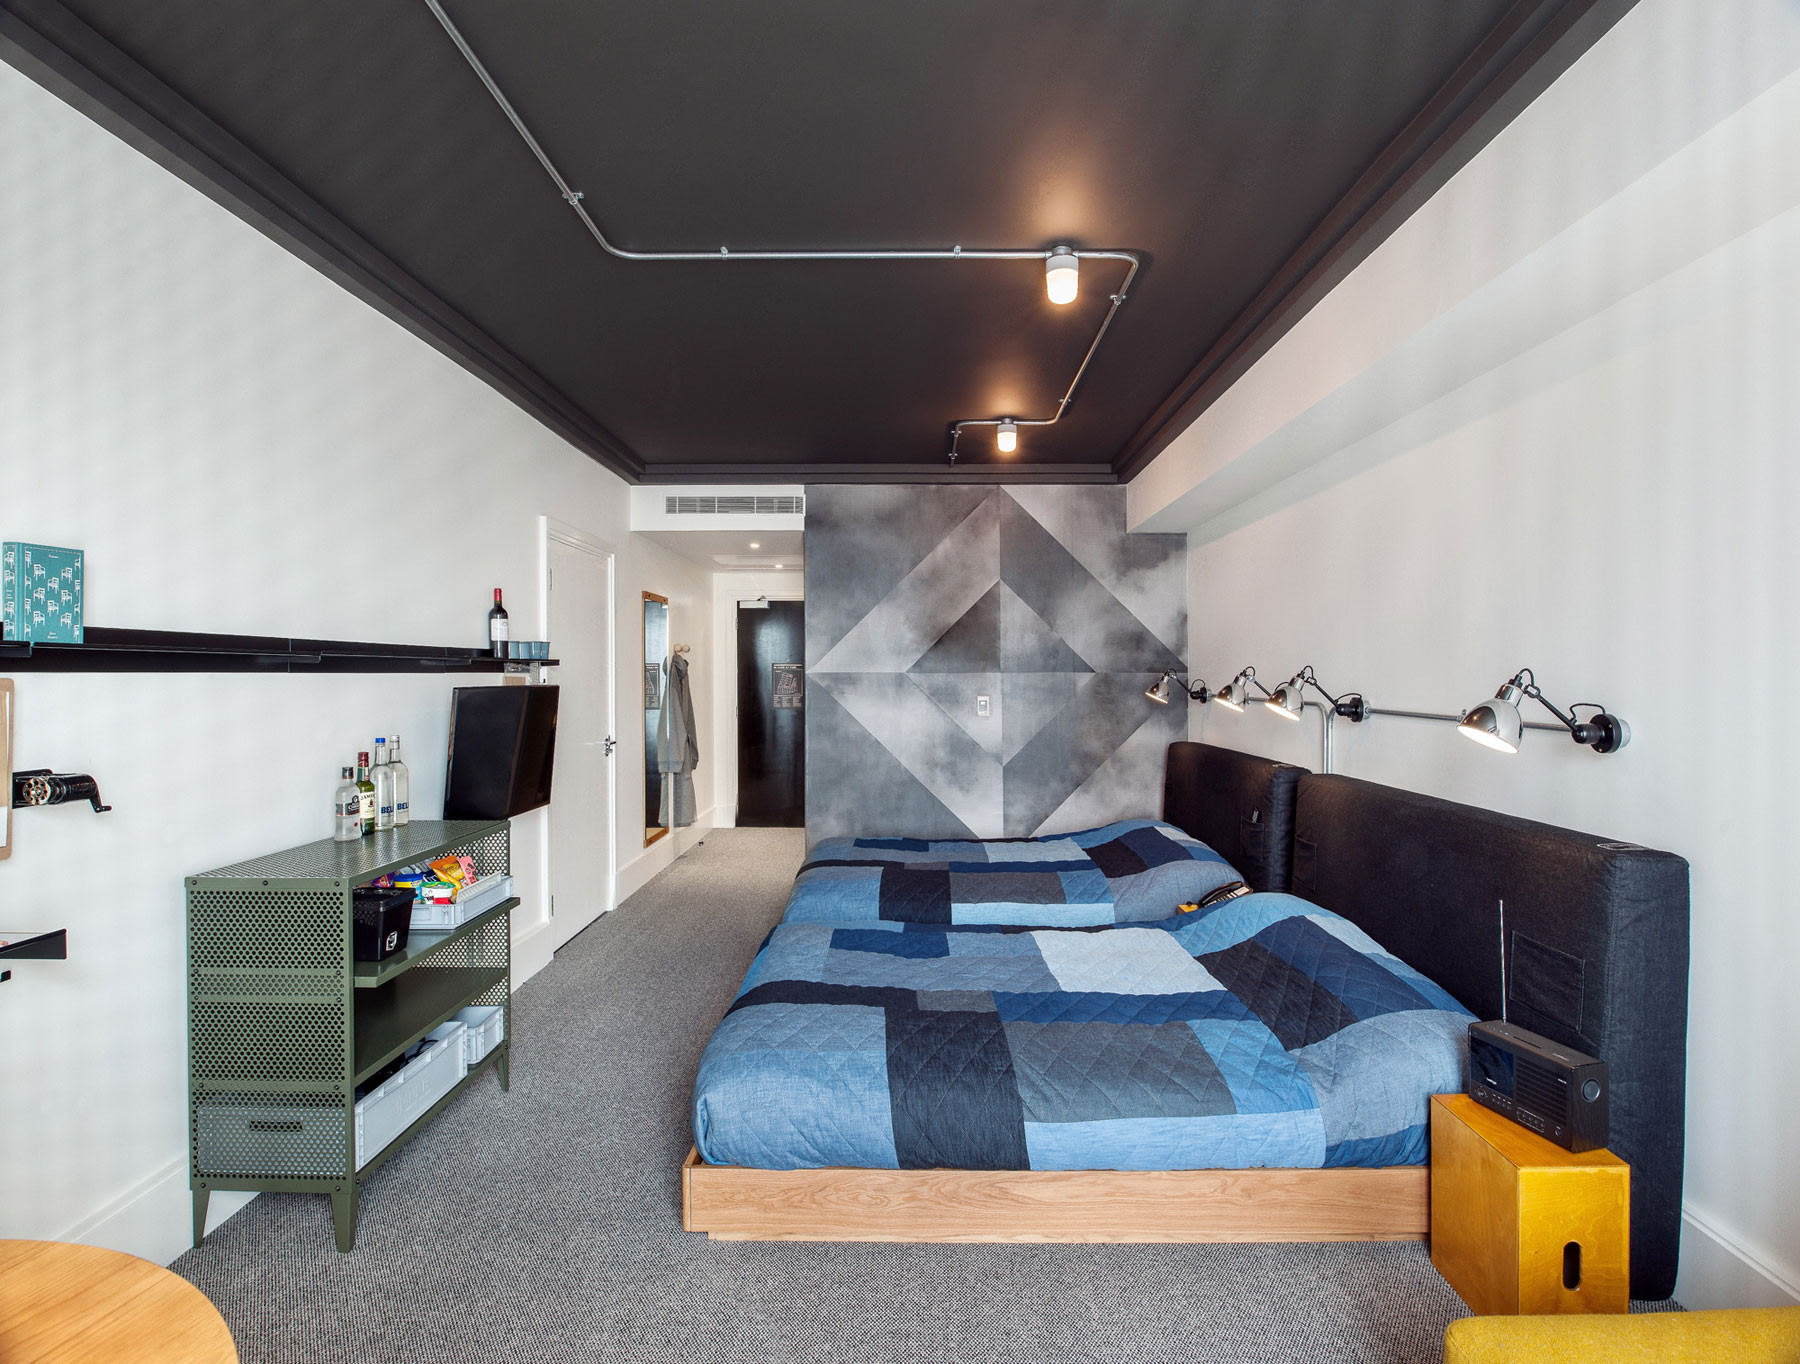 Ace hotel london universal design studio archdaily for Designhotel london